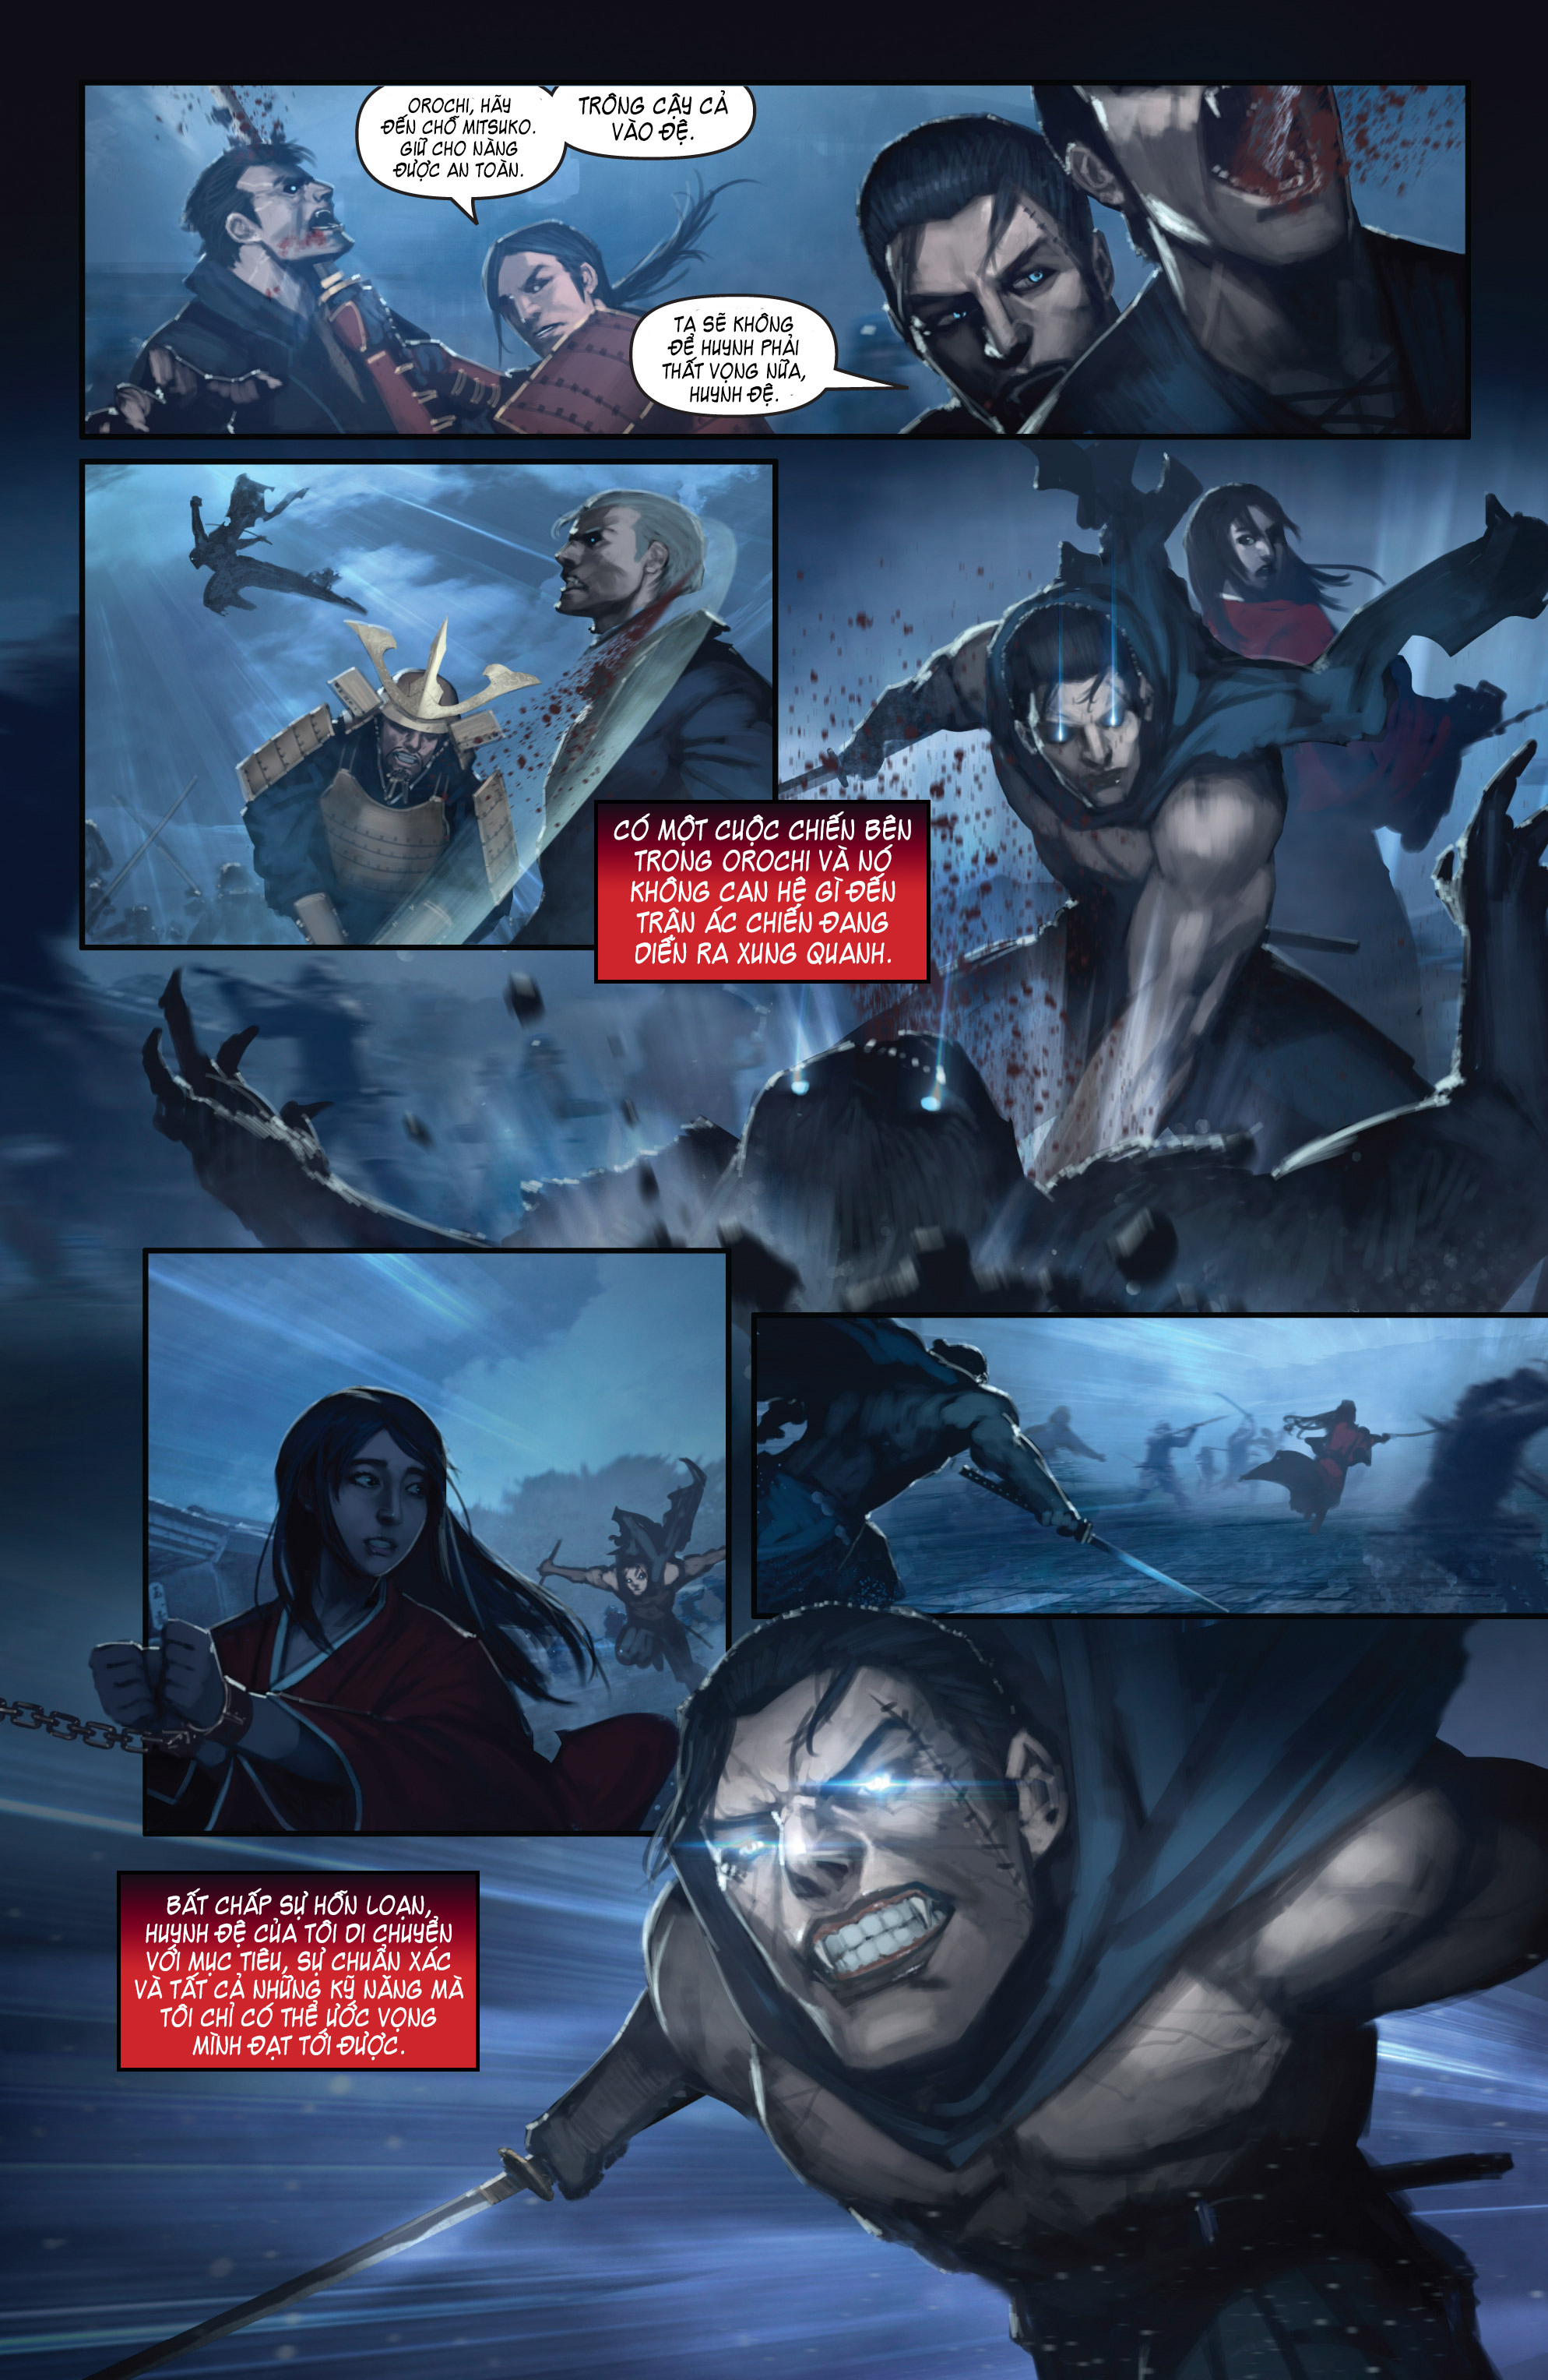 BUSHIDO - THE WAY OF THE WARRIOR chapter 5 - end trang 14